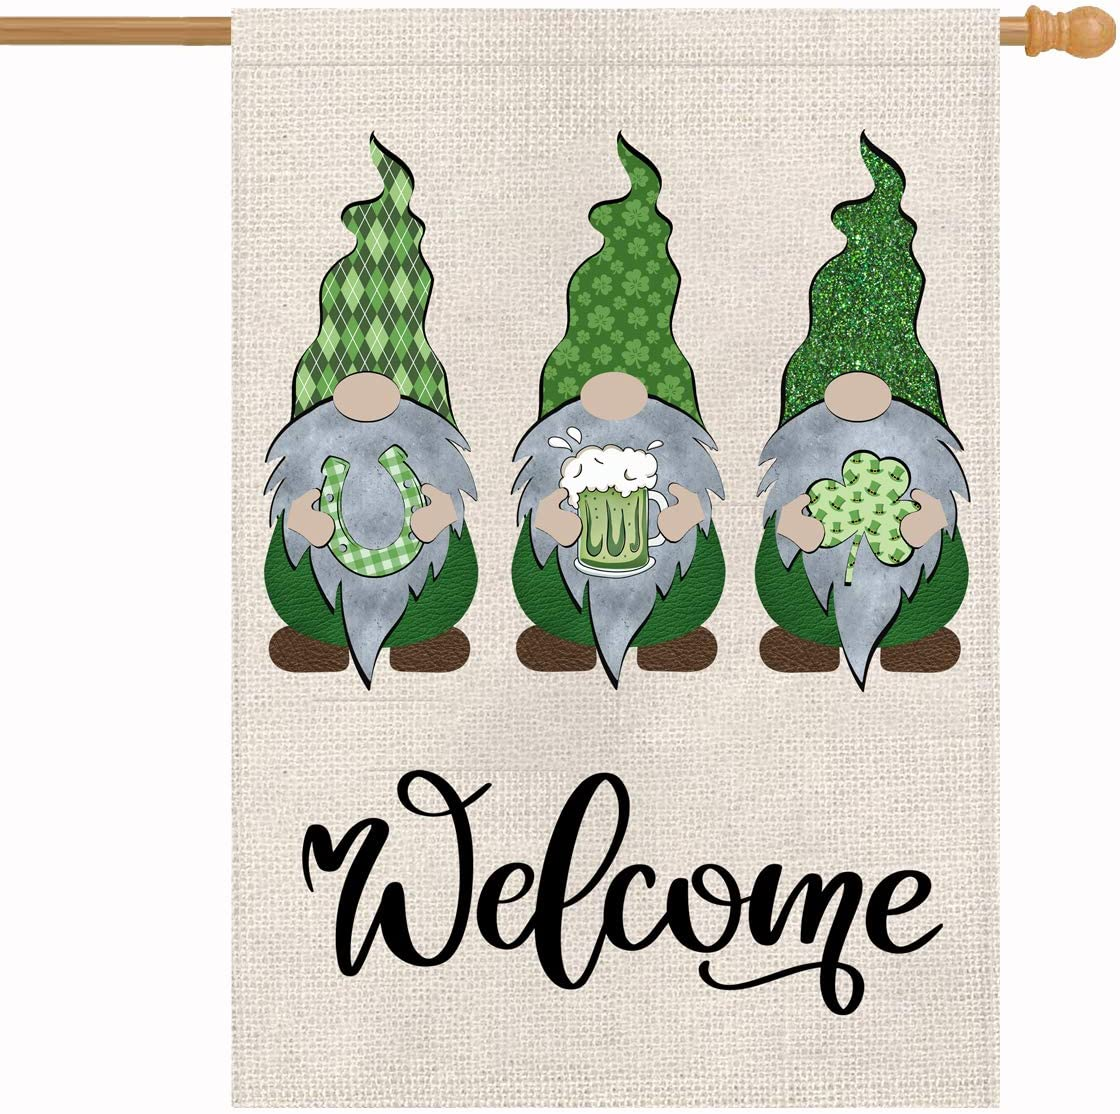 Welcome Gnomes St Patricks Day House Flag 28 x 40 Inch Yard Decor Vertical Double Sided Outdoor Decorations Leprechaun Horseshoe Beer Shamrock House Decorative